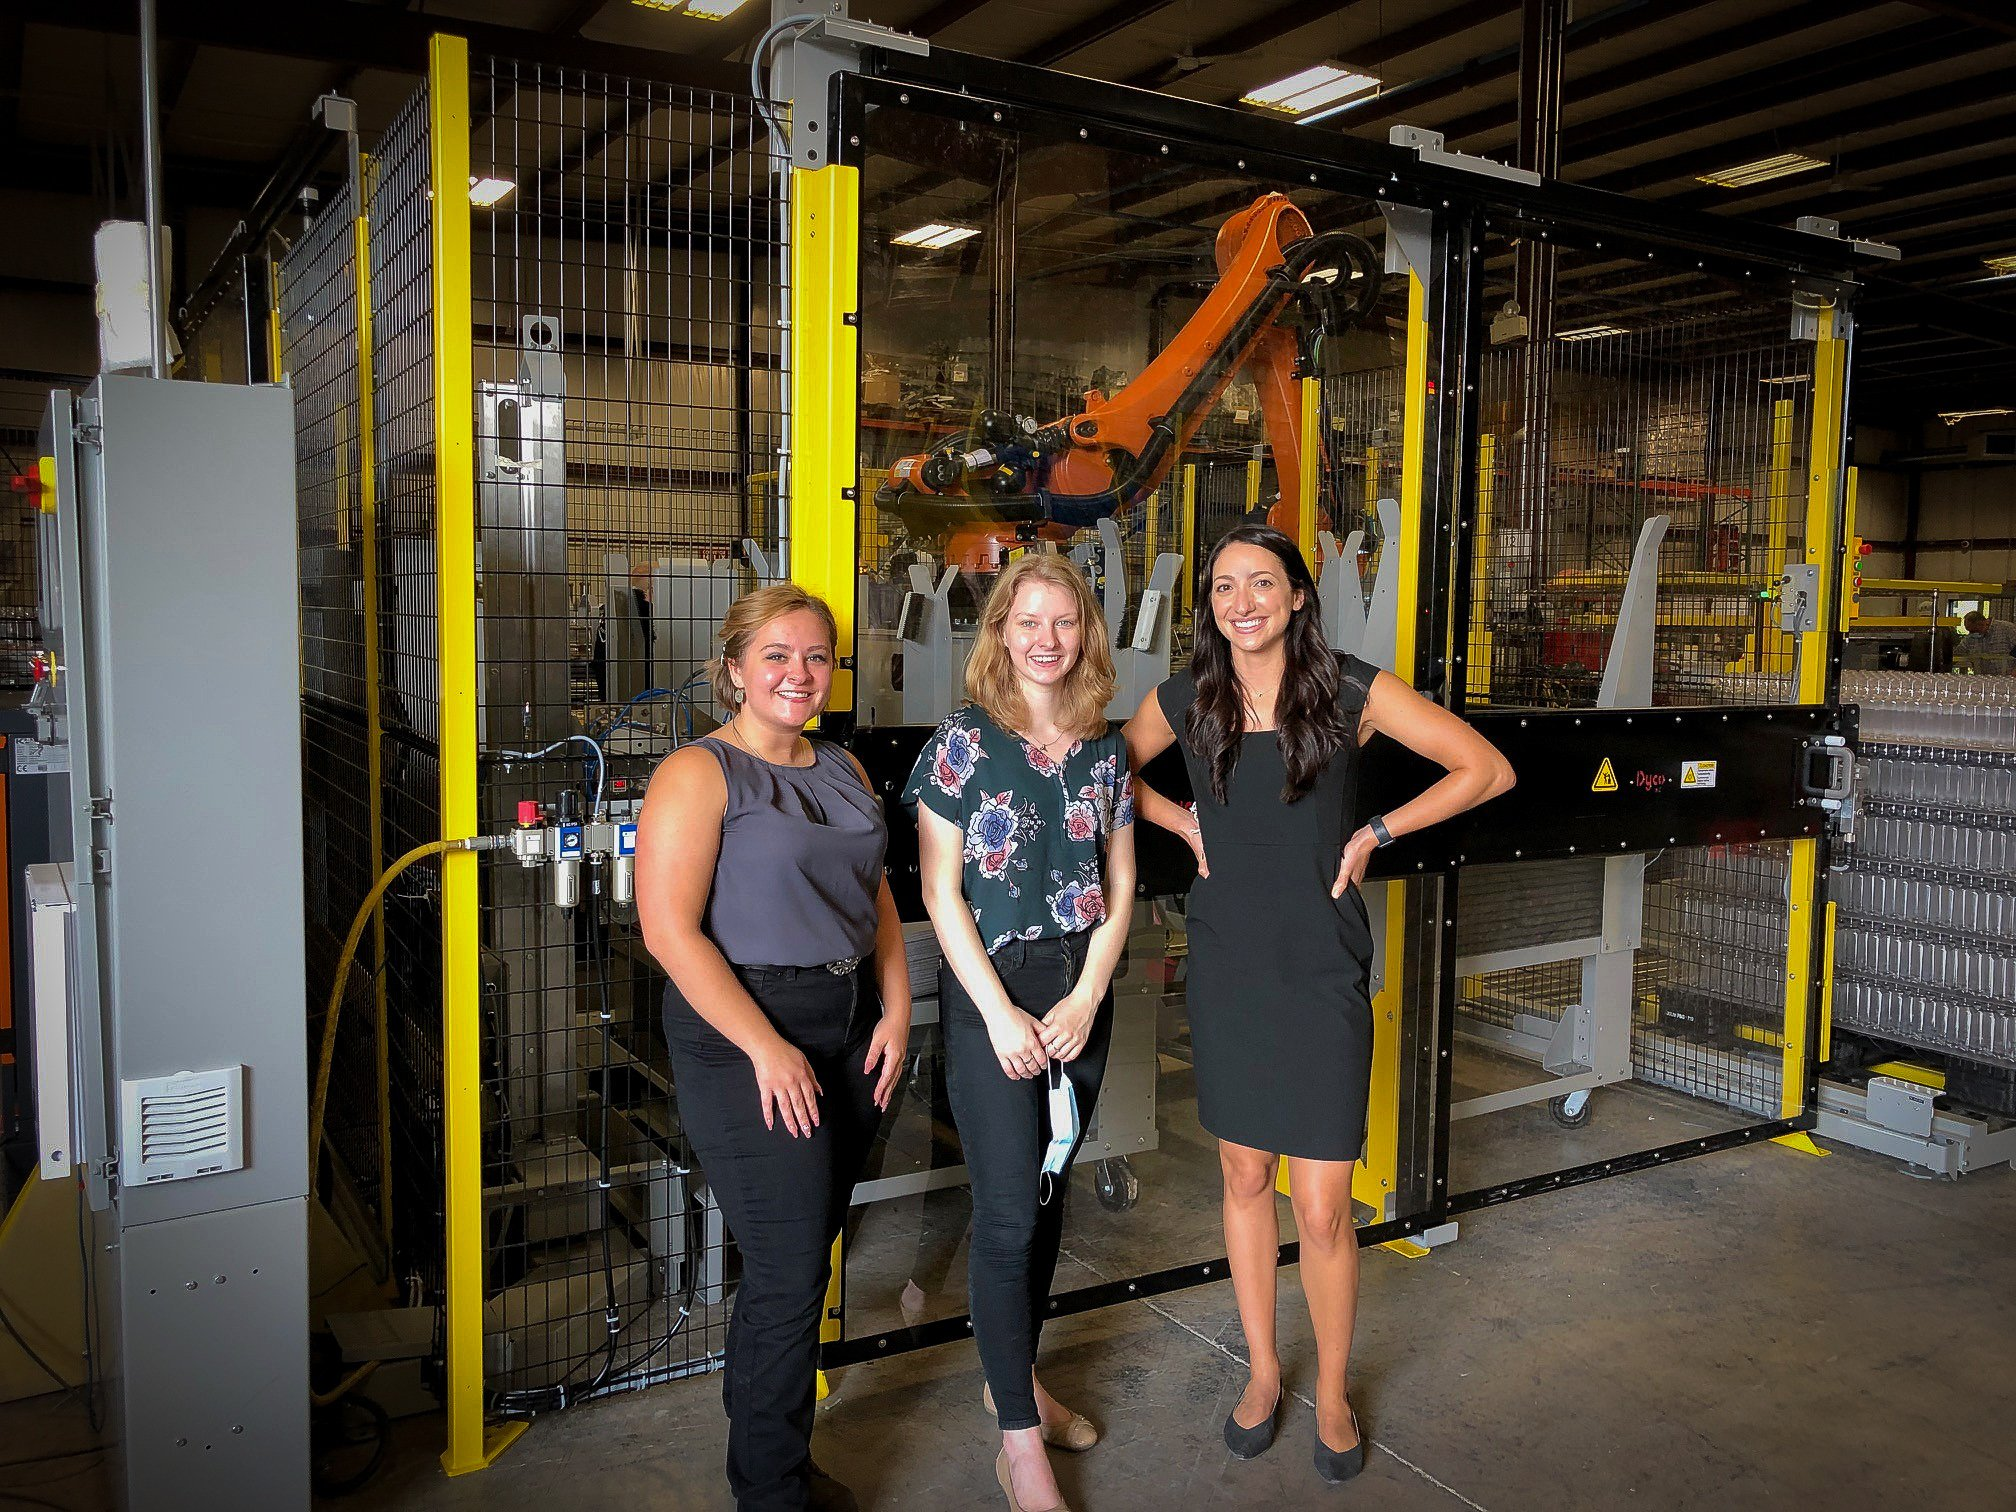 From left: Susan Cook, Applications Engineer; Caitlin Kalsbeek, Applications Engineer; Janelle Holloman, Asst. Engineering Manager